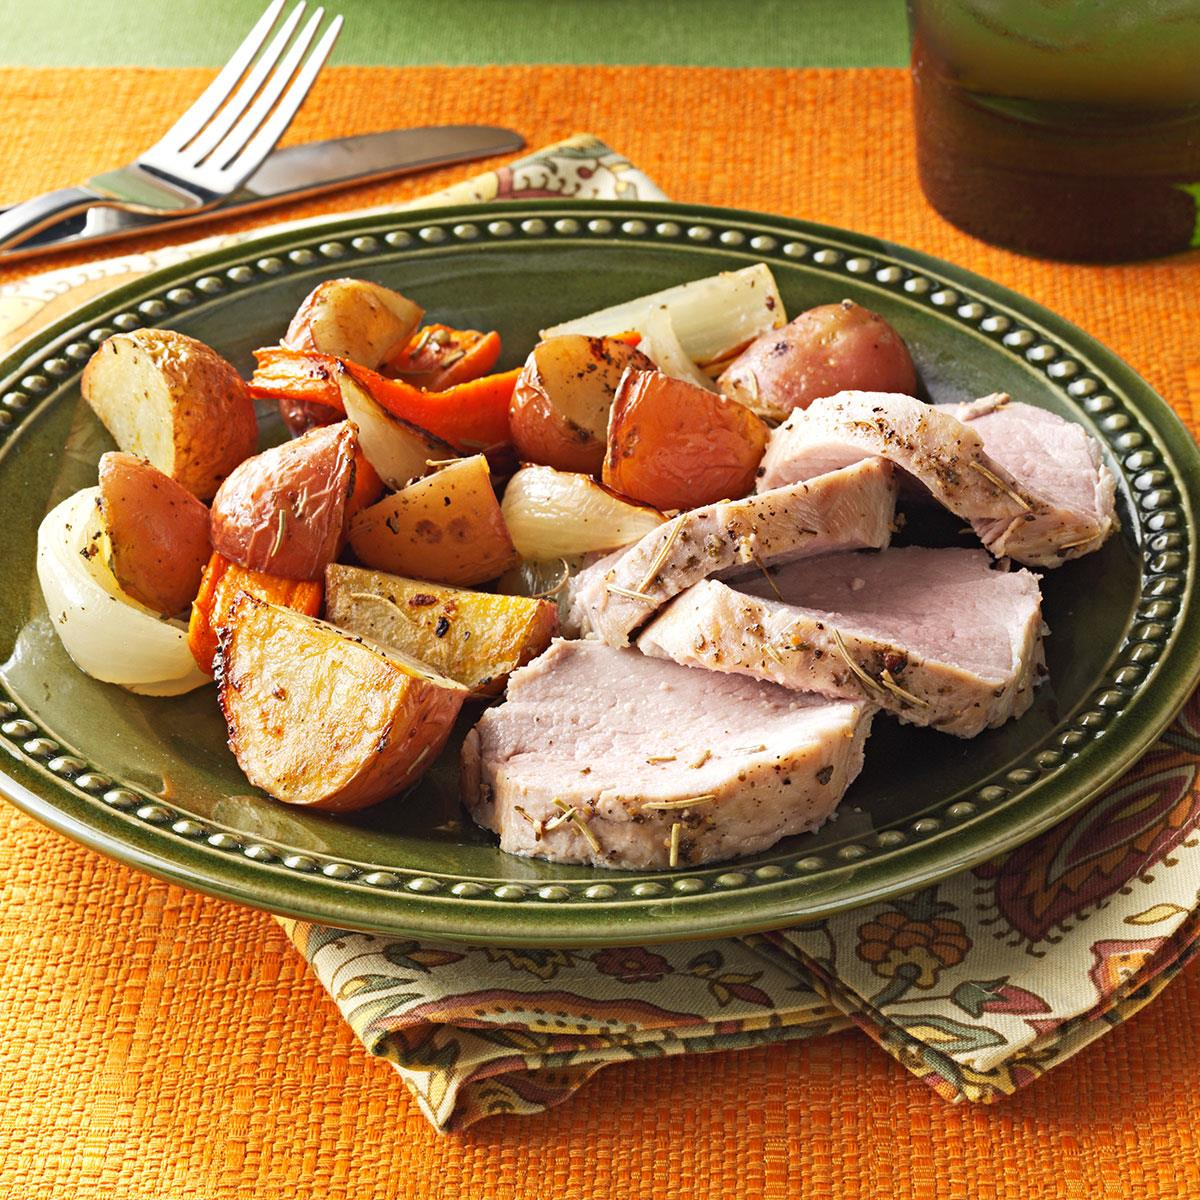 Discussion on this topic: Pork Tenderloin and Orange-Glazed Carrots, pork-tenderloin-and-orange-glazed-carrots/